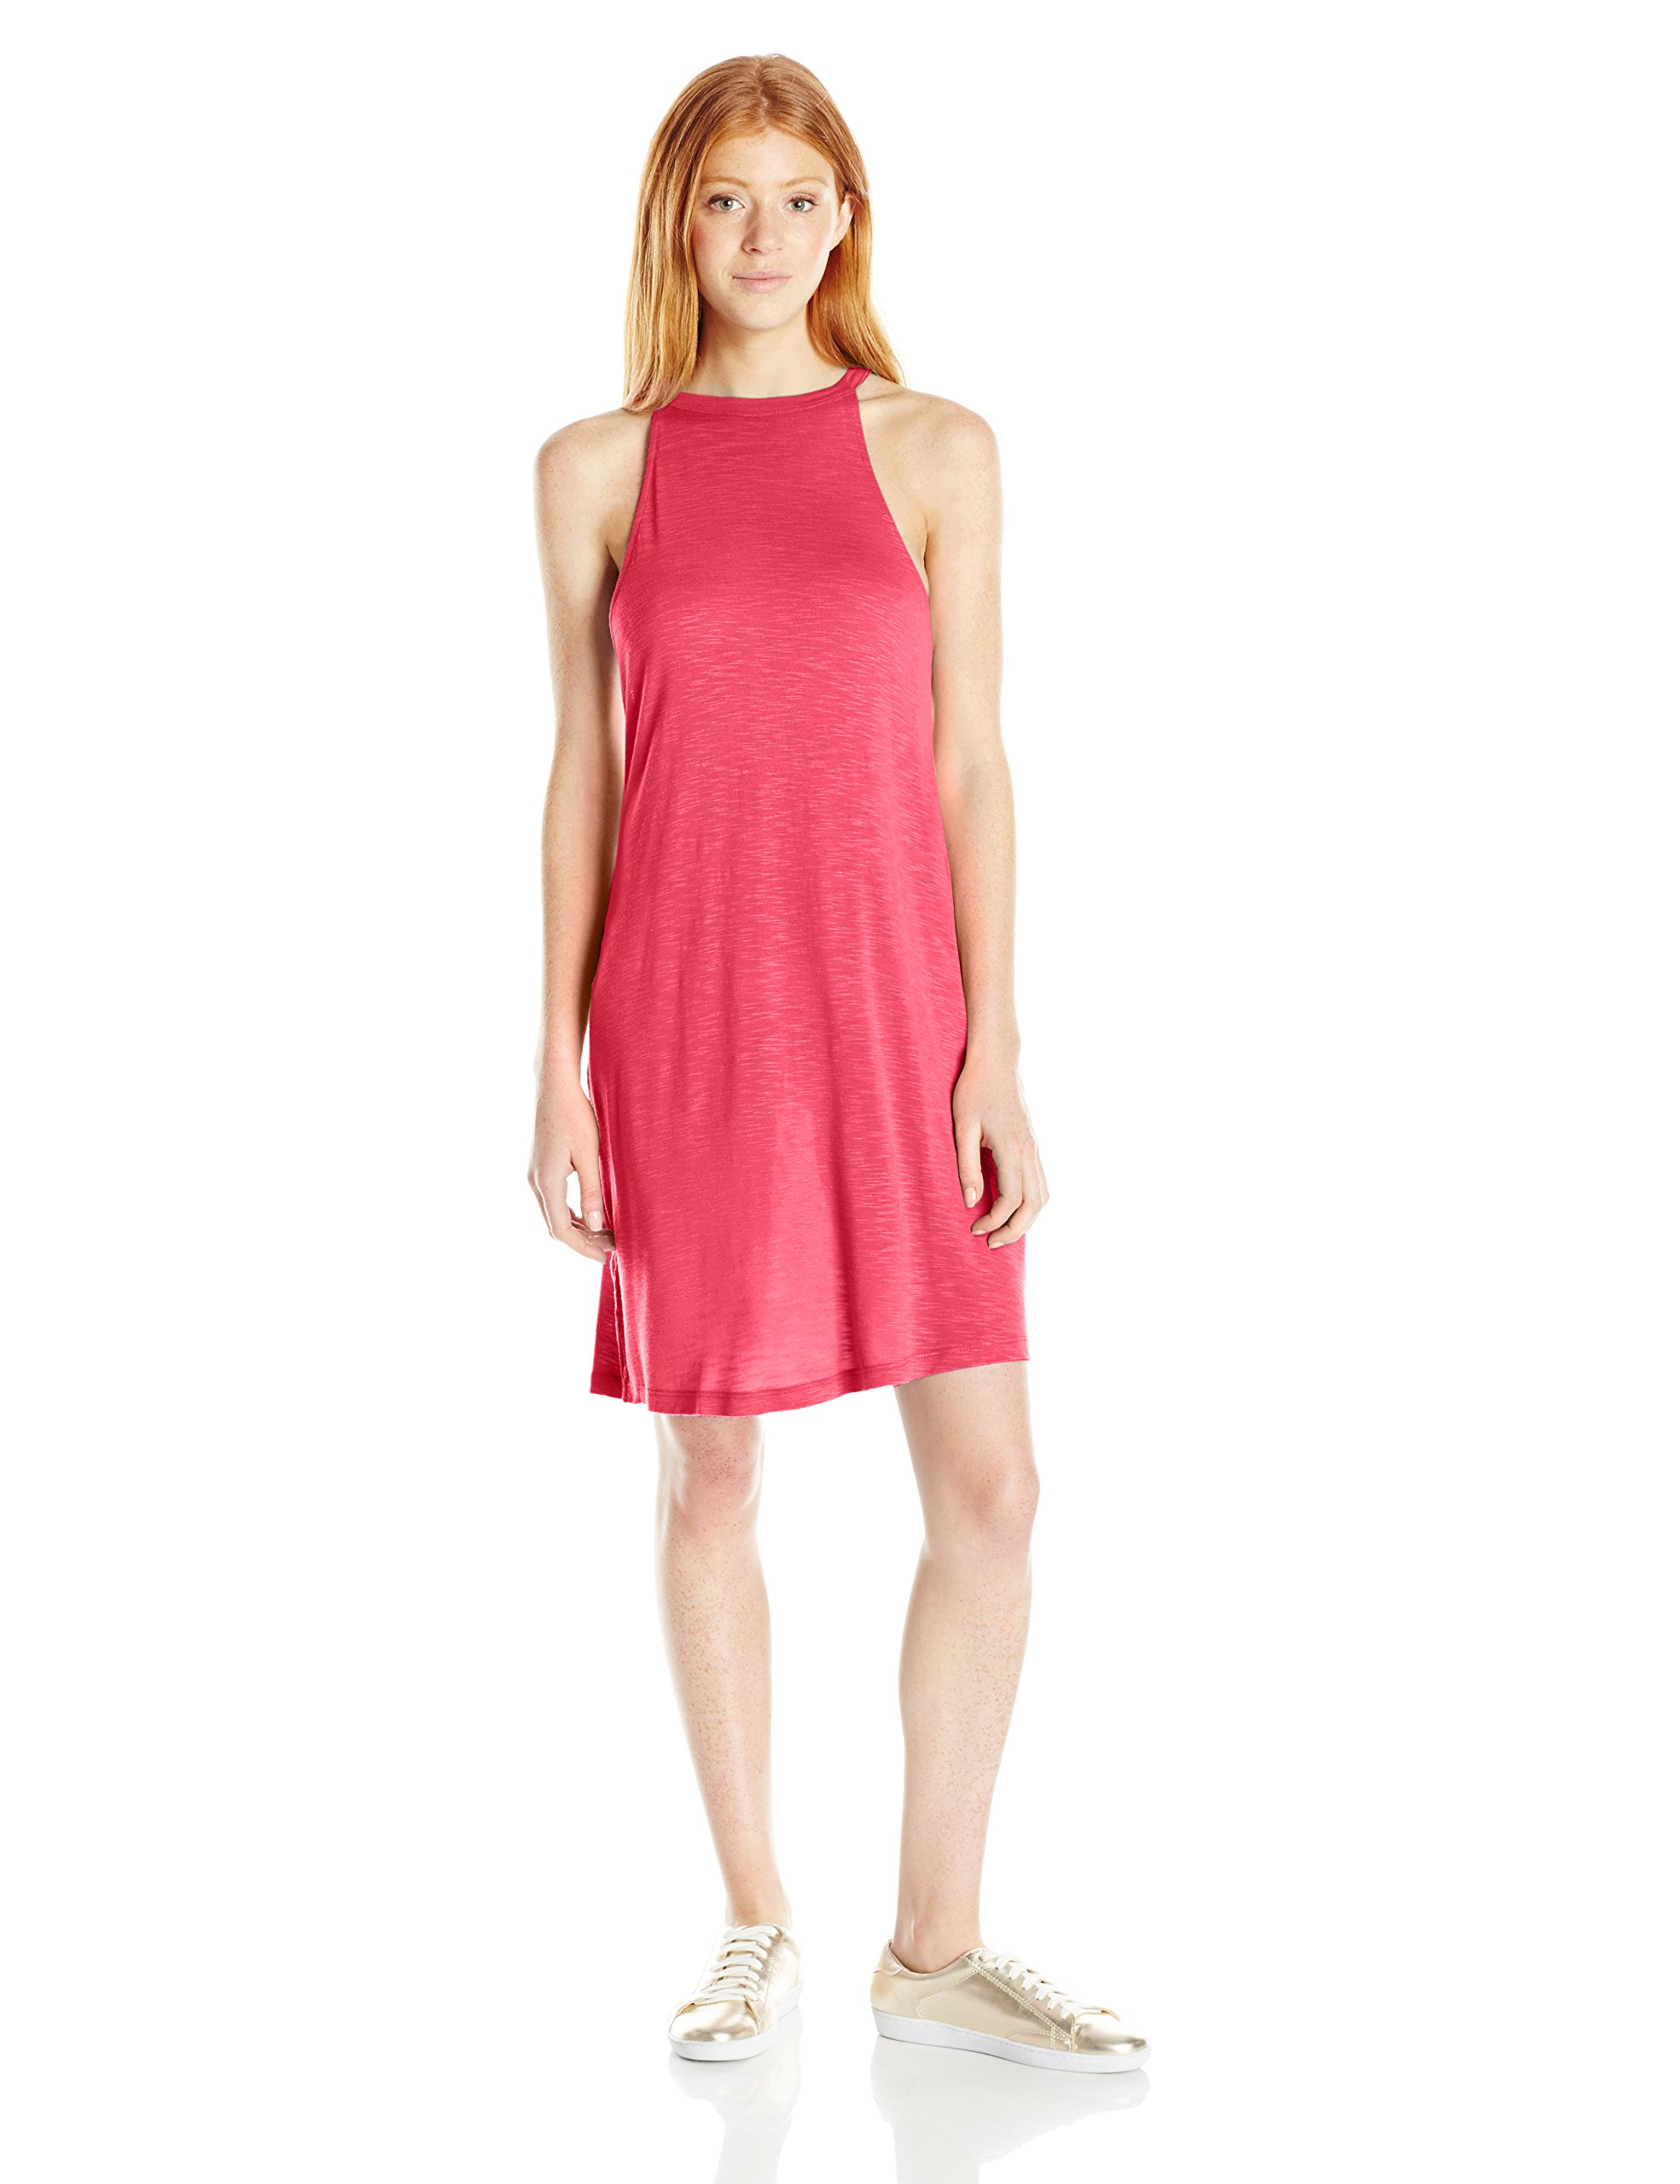 Roxy Junior's Summer Breaking Dress, Geranium, Small